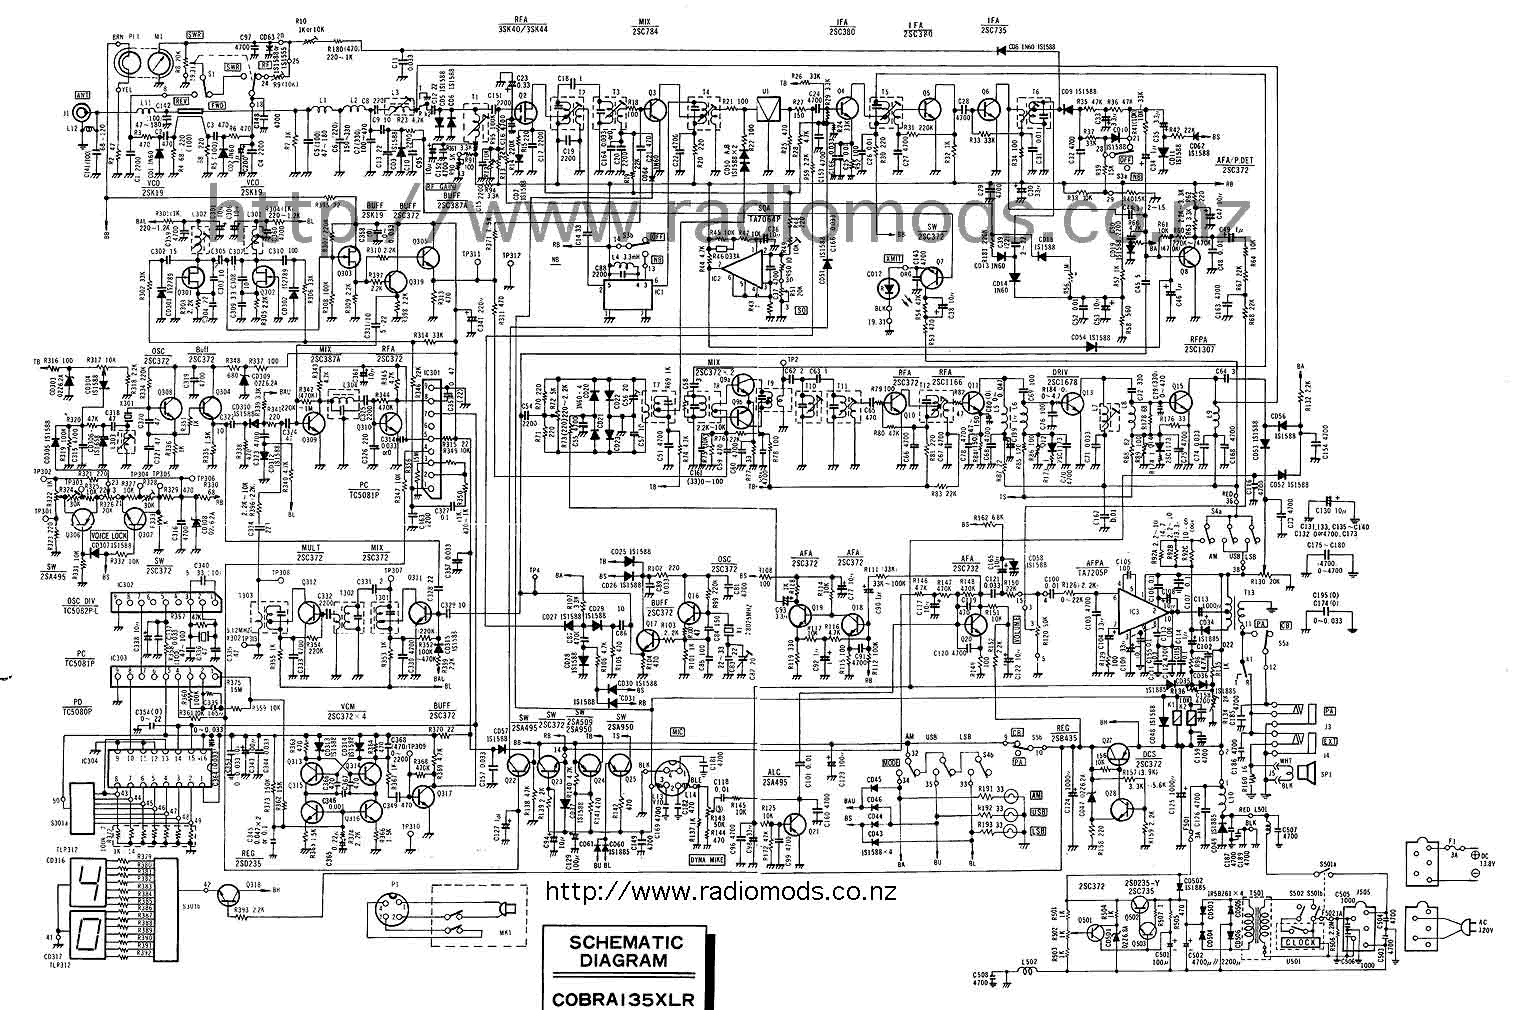 The Defpom Cb And Ham Circuit Diagram Page C180 Fuse Box Go To Cobra 135xlr